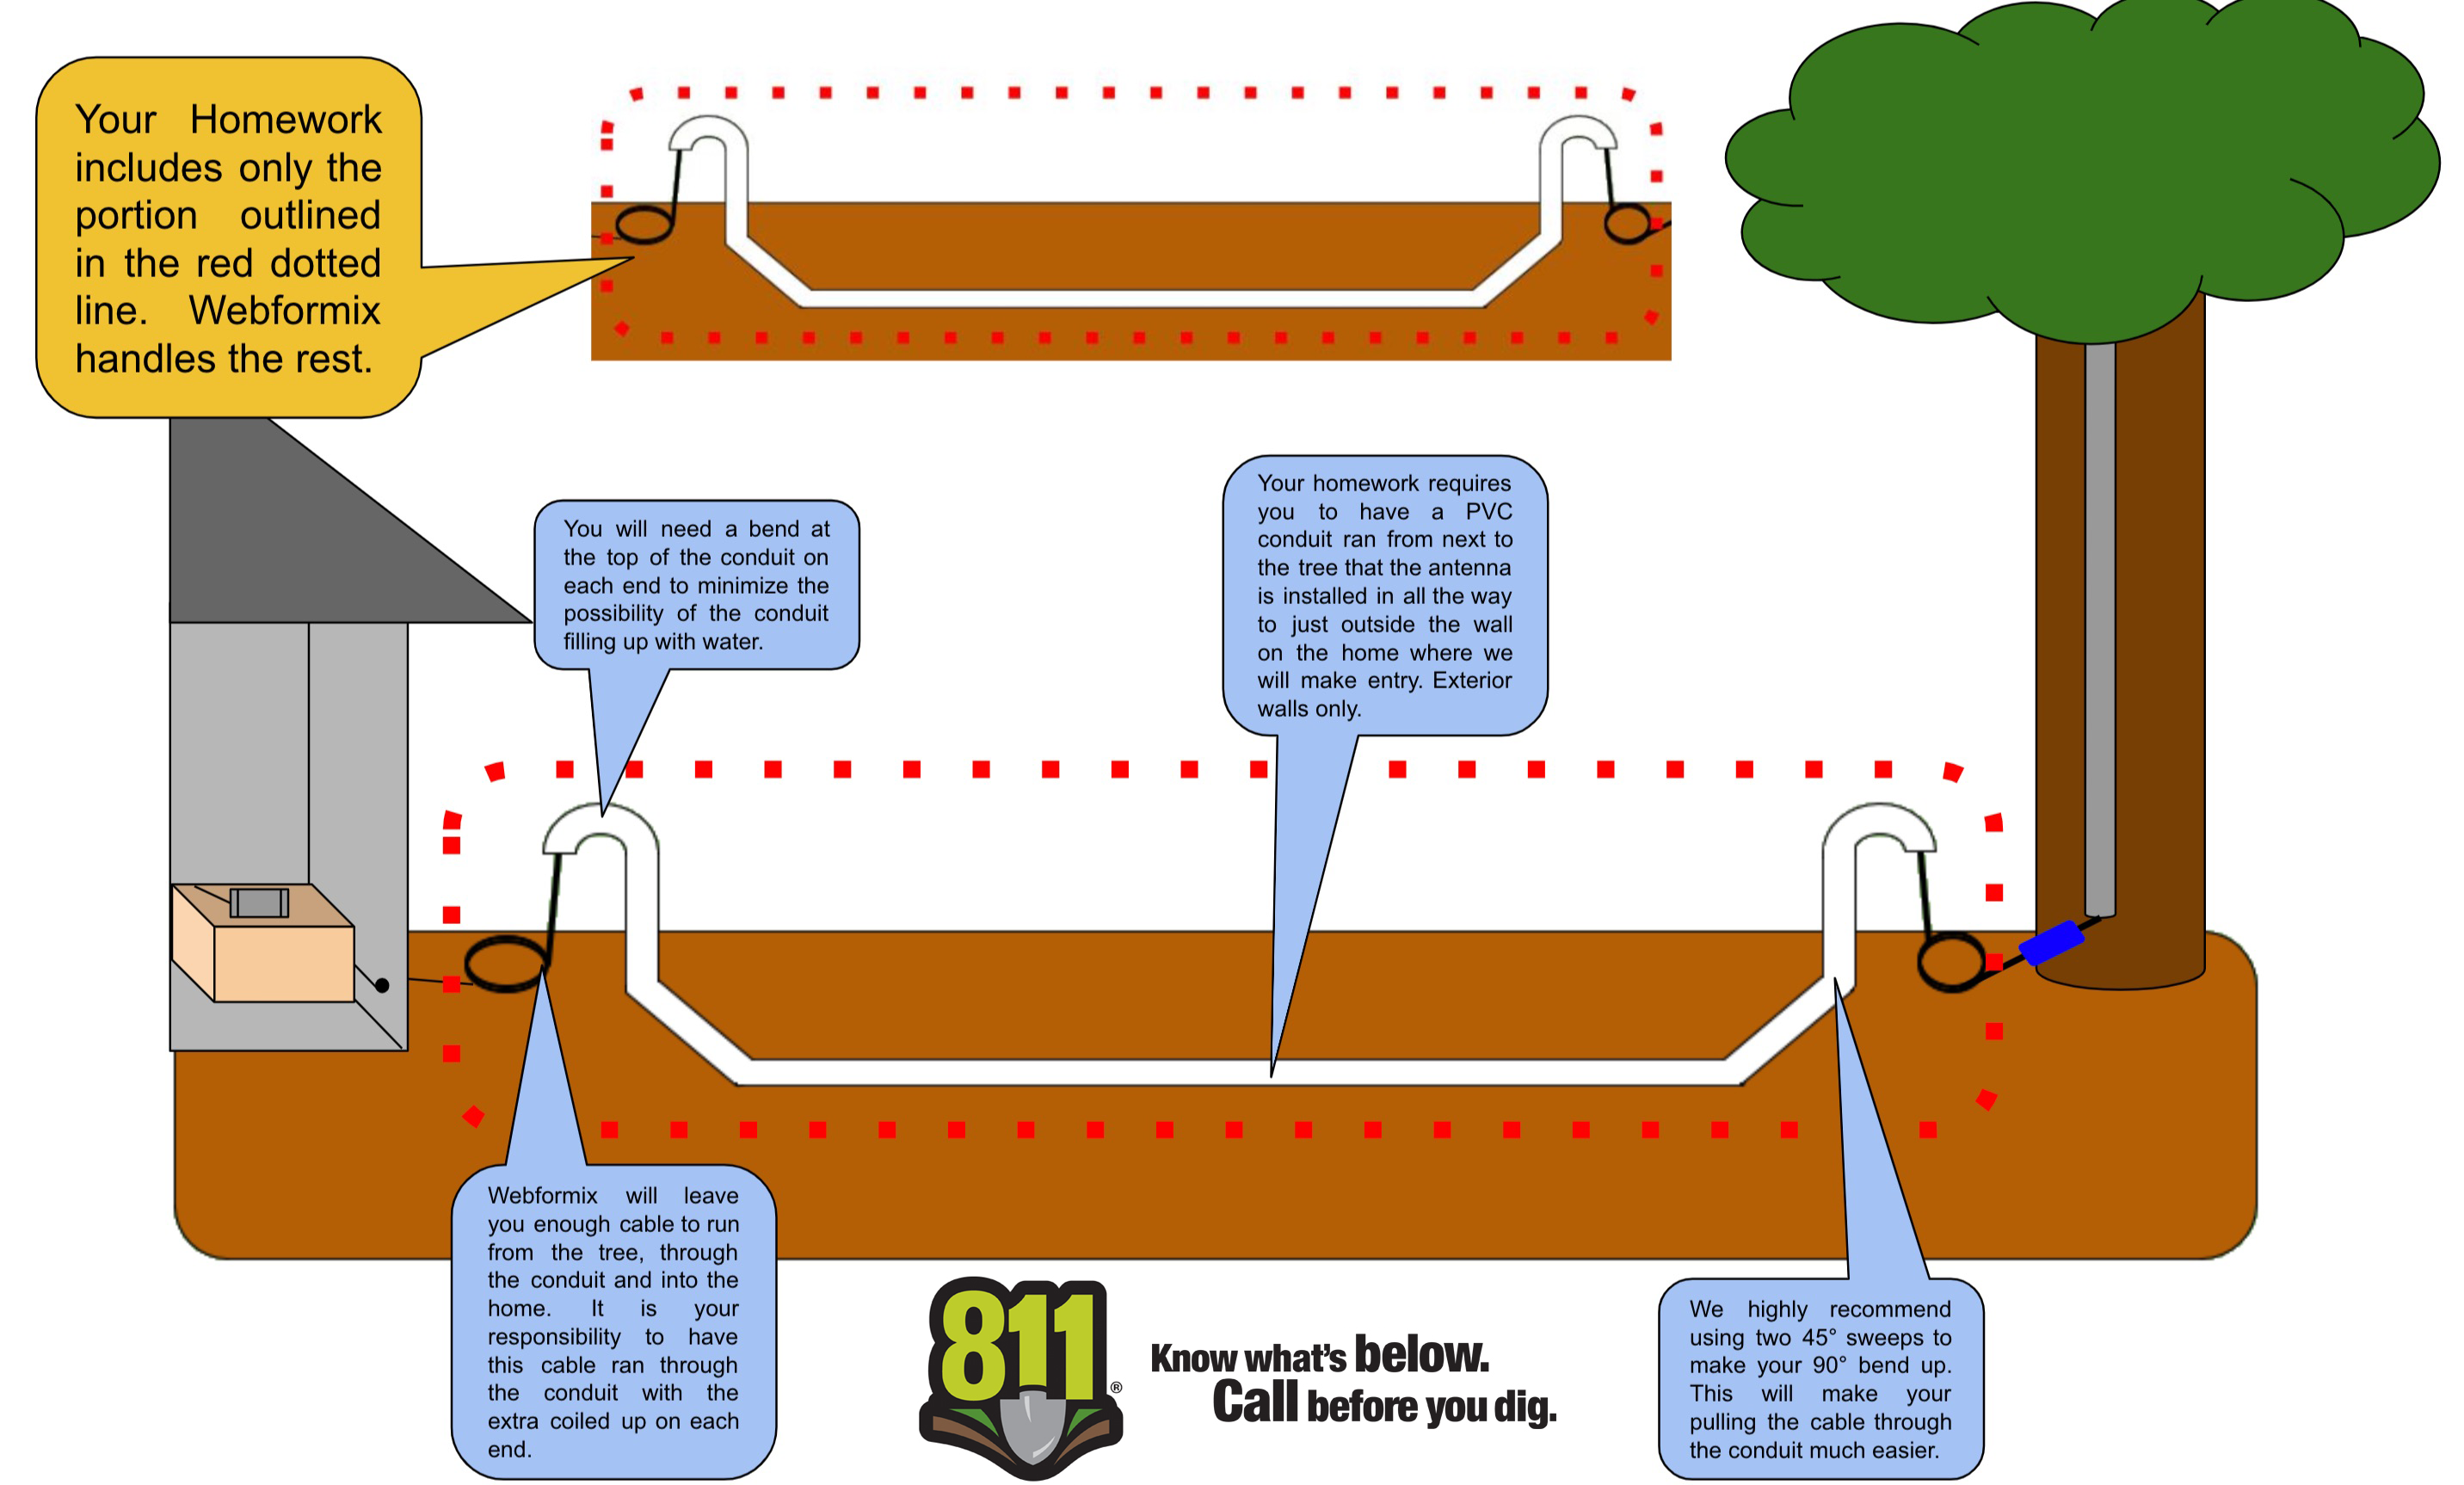 diagram of tree installation for wireless internet service